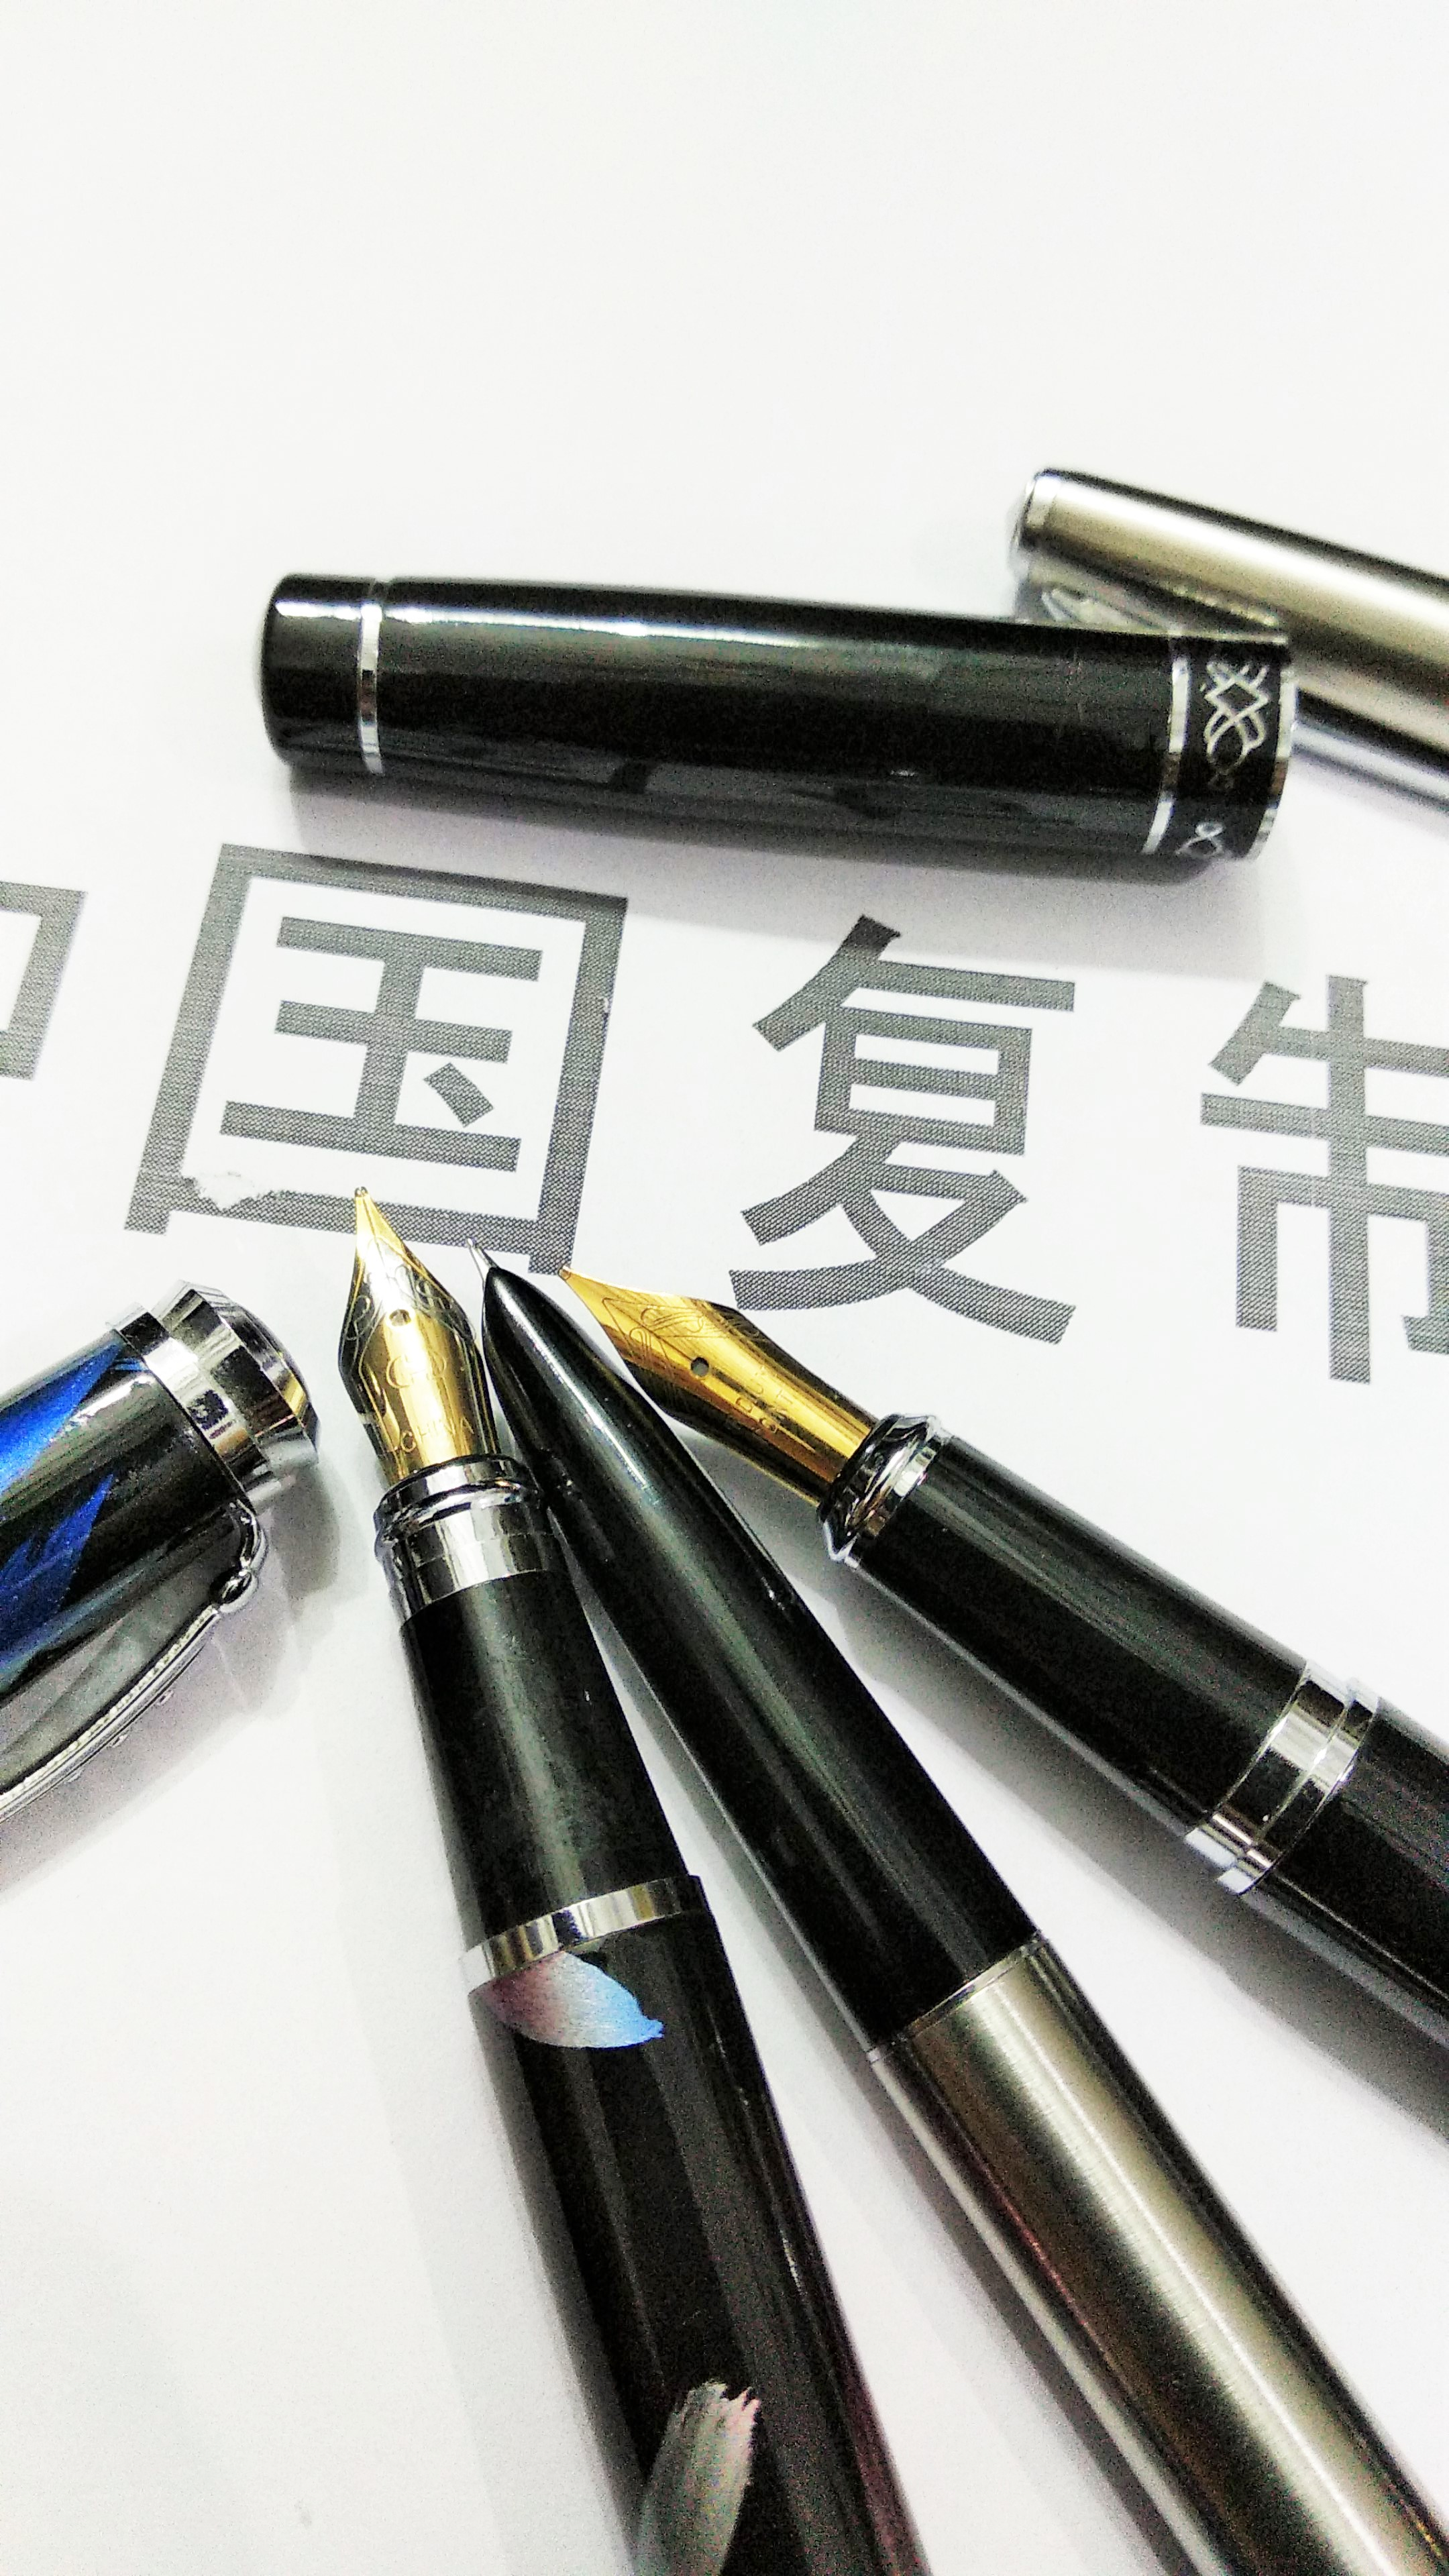 Chinese replica pens